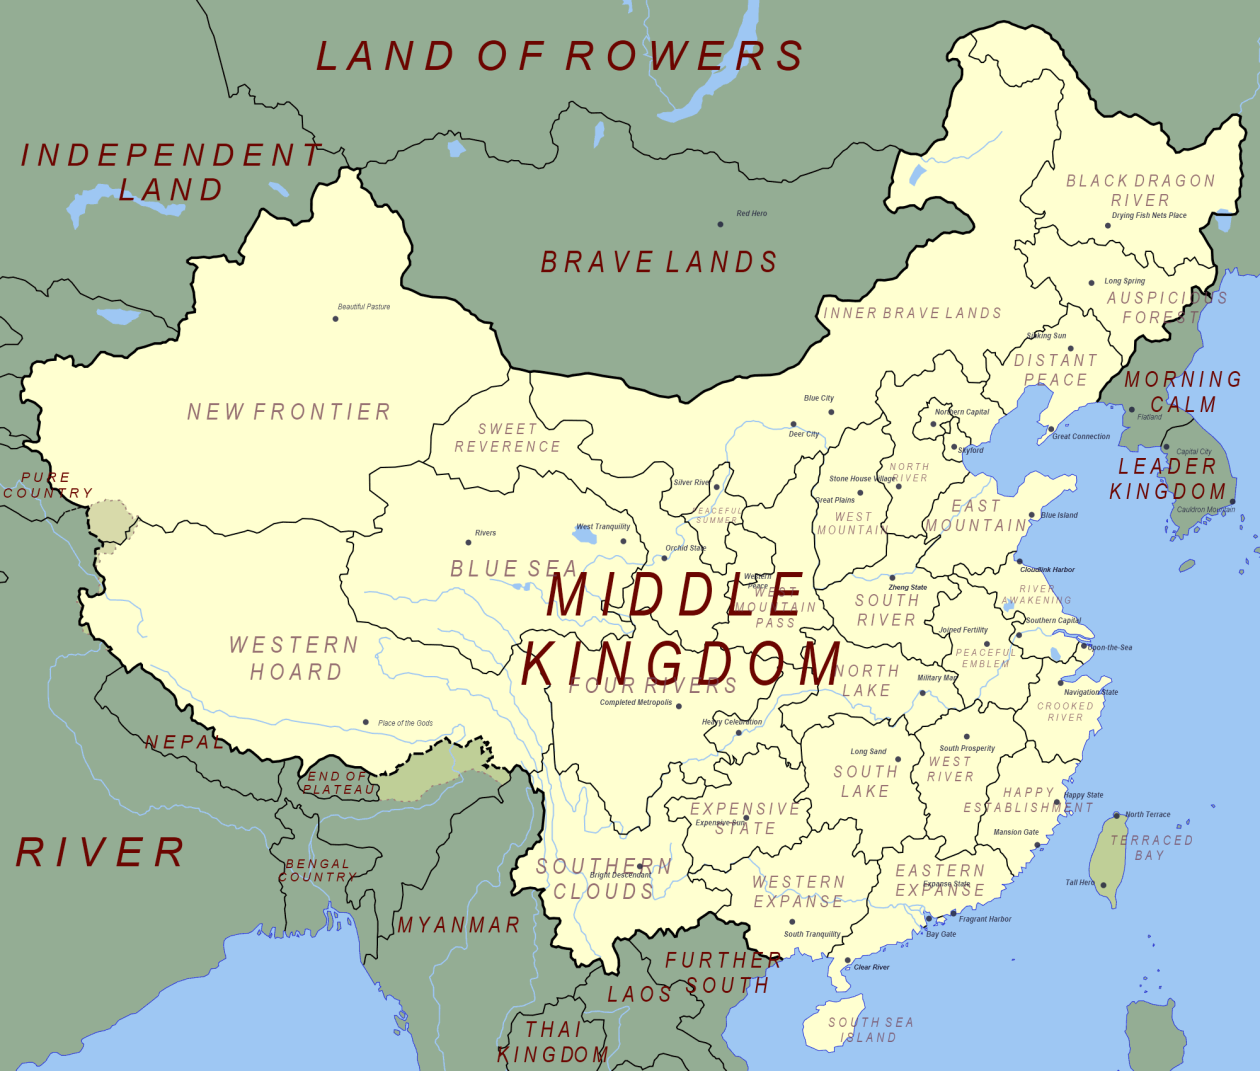 Image Of China Map.In China S Map Of The World Russia Is The Land Of Rowers And